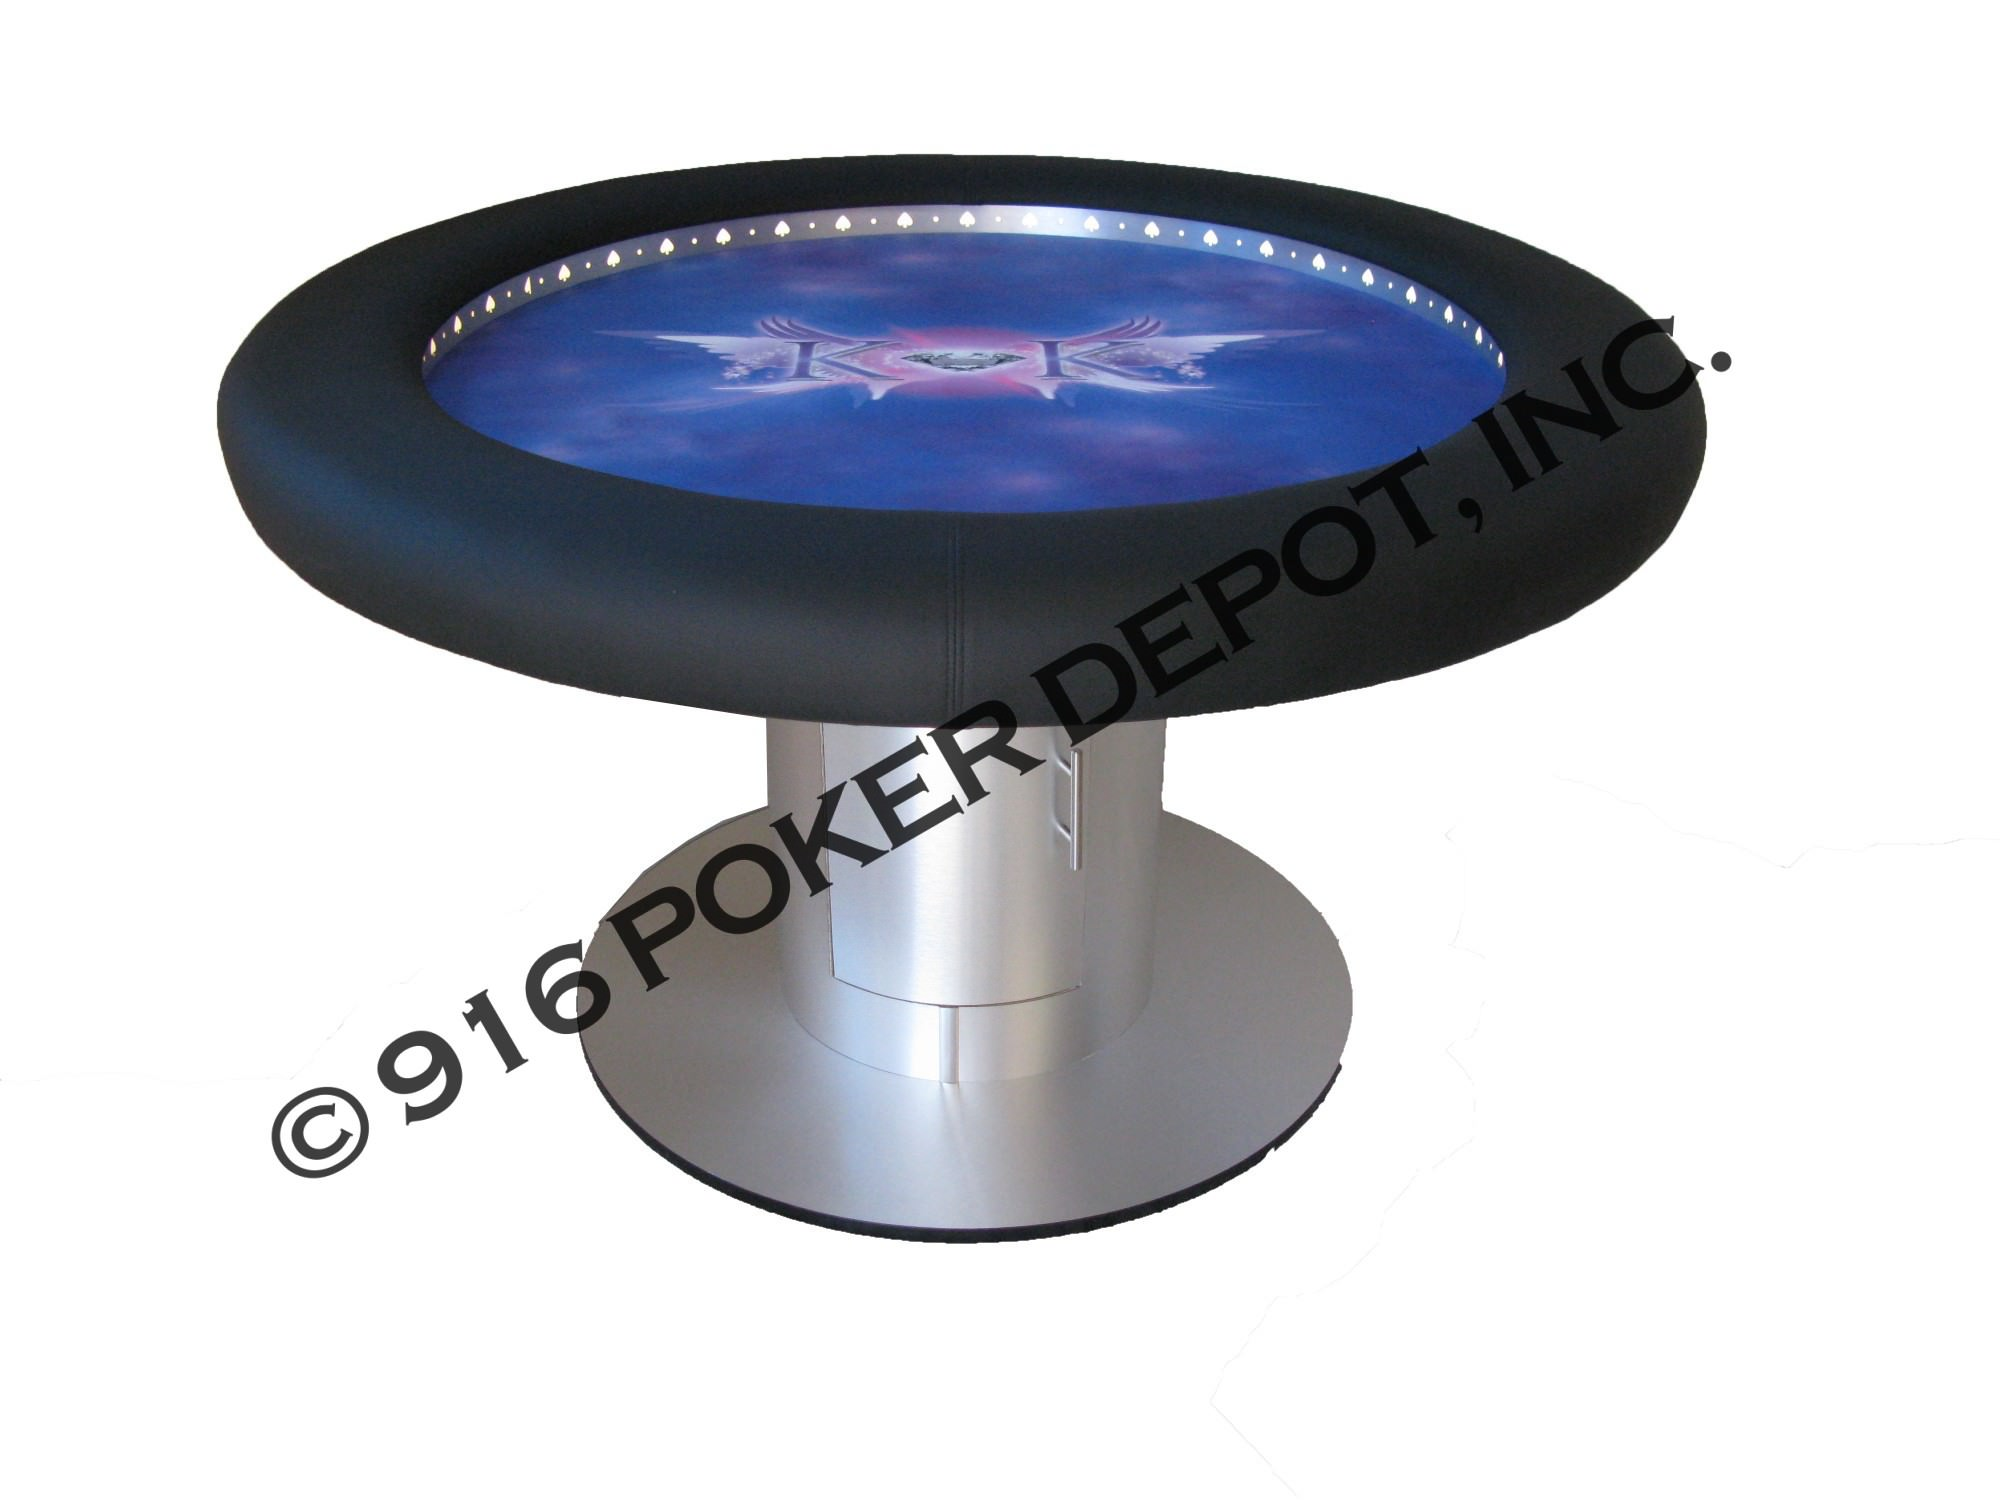 Khloe Kardashian Poker Table